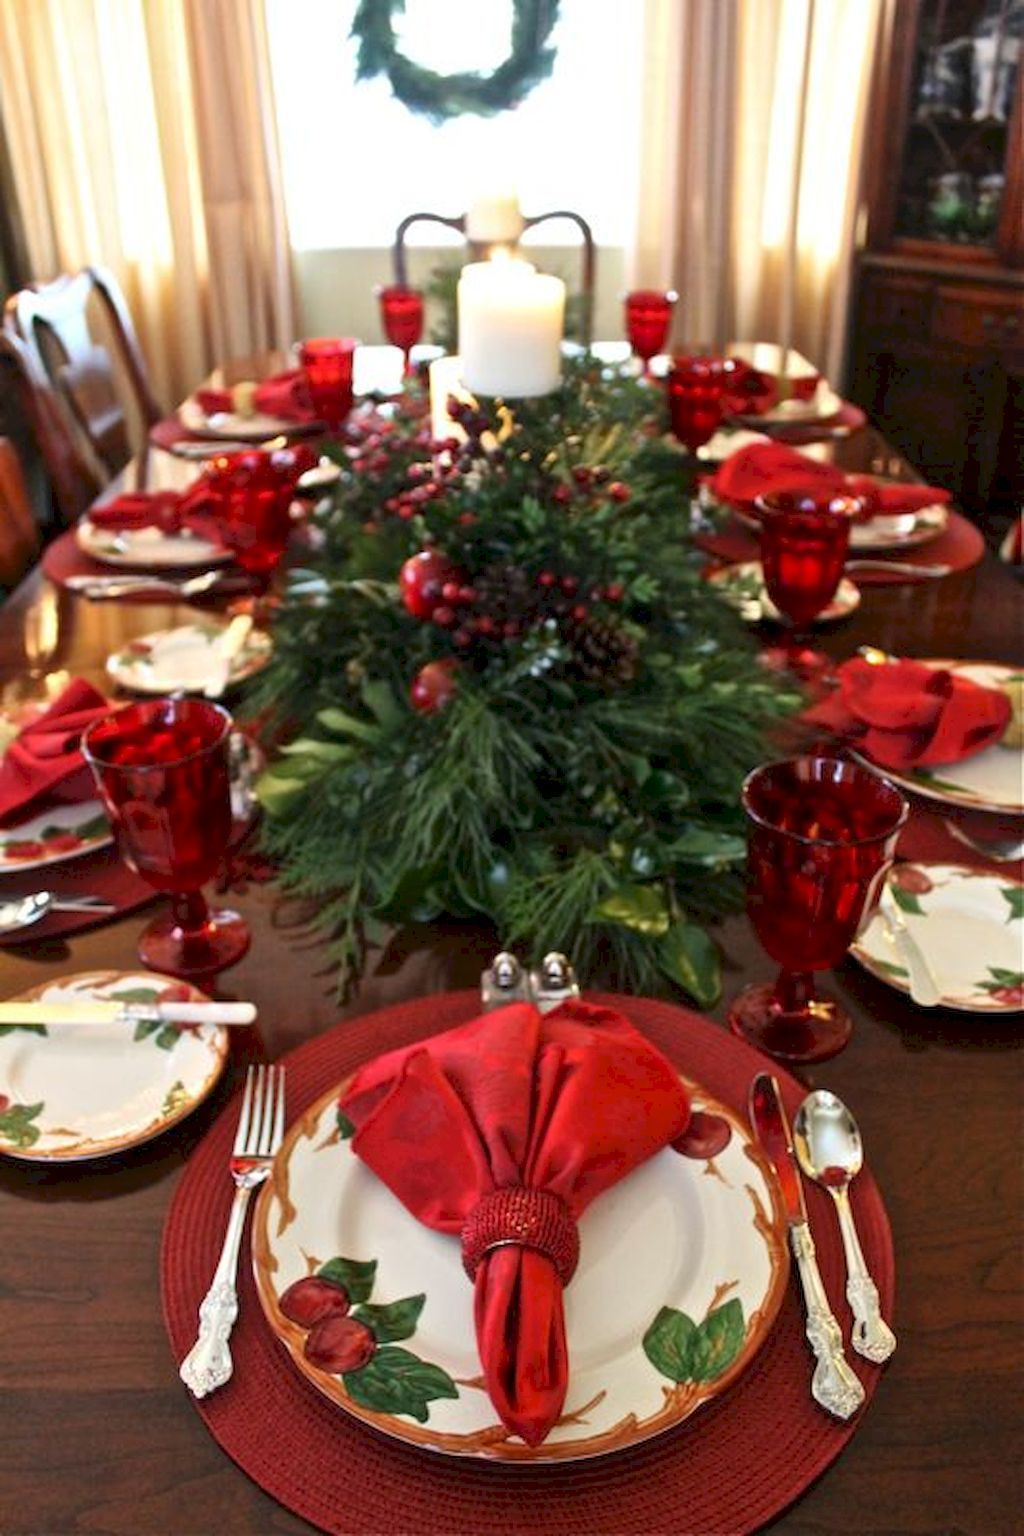 40 Awesome Christmas Dinner Table Decorations Ideas 6 Decoration Table De Noel Table De Noel Deco Table Noel